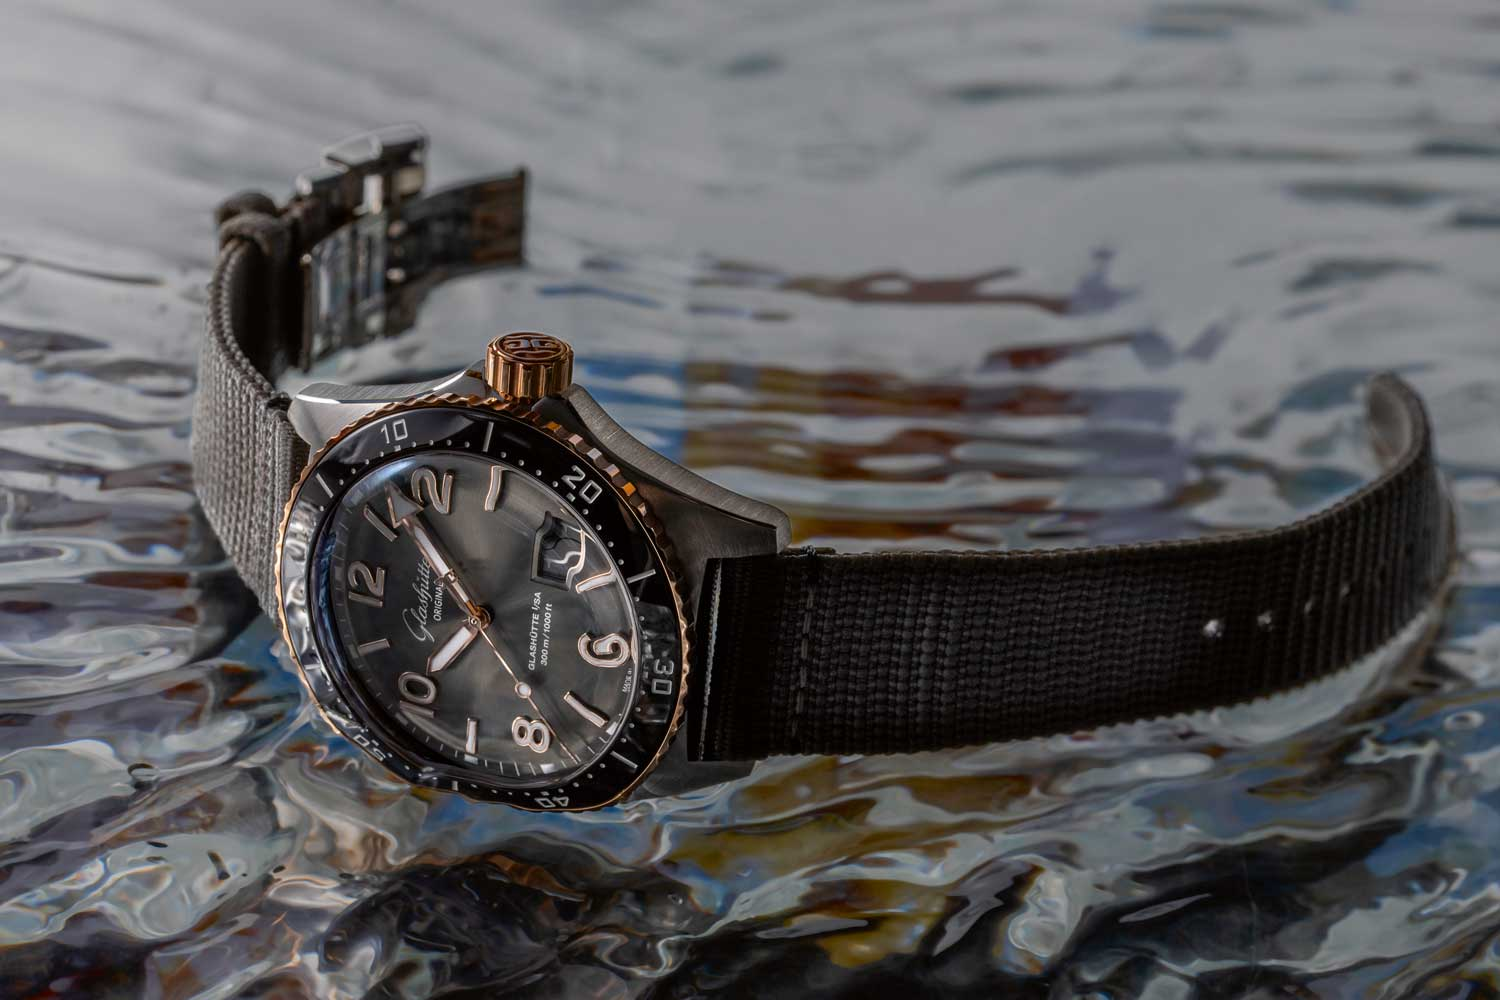 The SeaQ Panorama Date mixes red gold with steel for a serious dive watch that's not afraid of some sporty yet glamorous sophistication. (©Revolution)